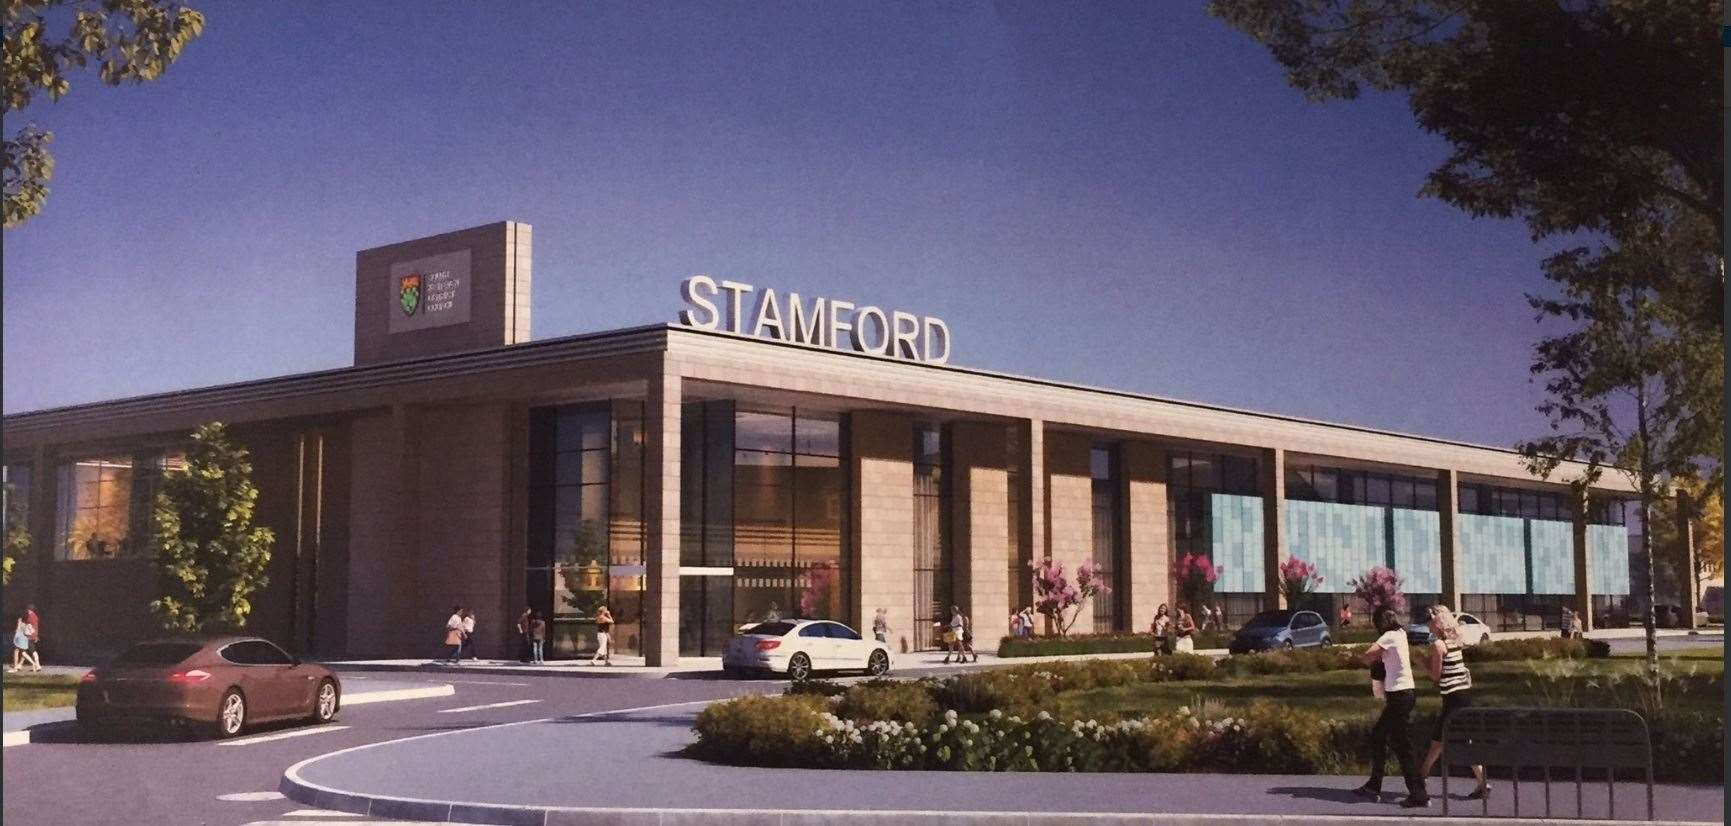 Stamford was set to get a new leisure centre, but will the council choose a cheaper option?